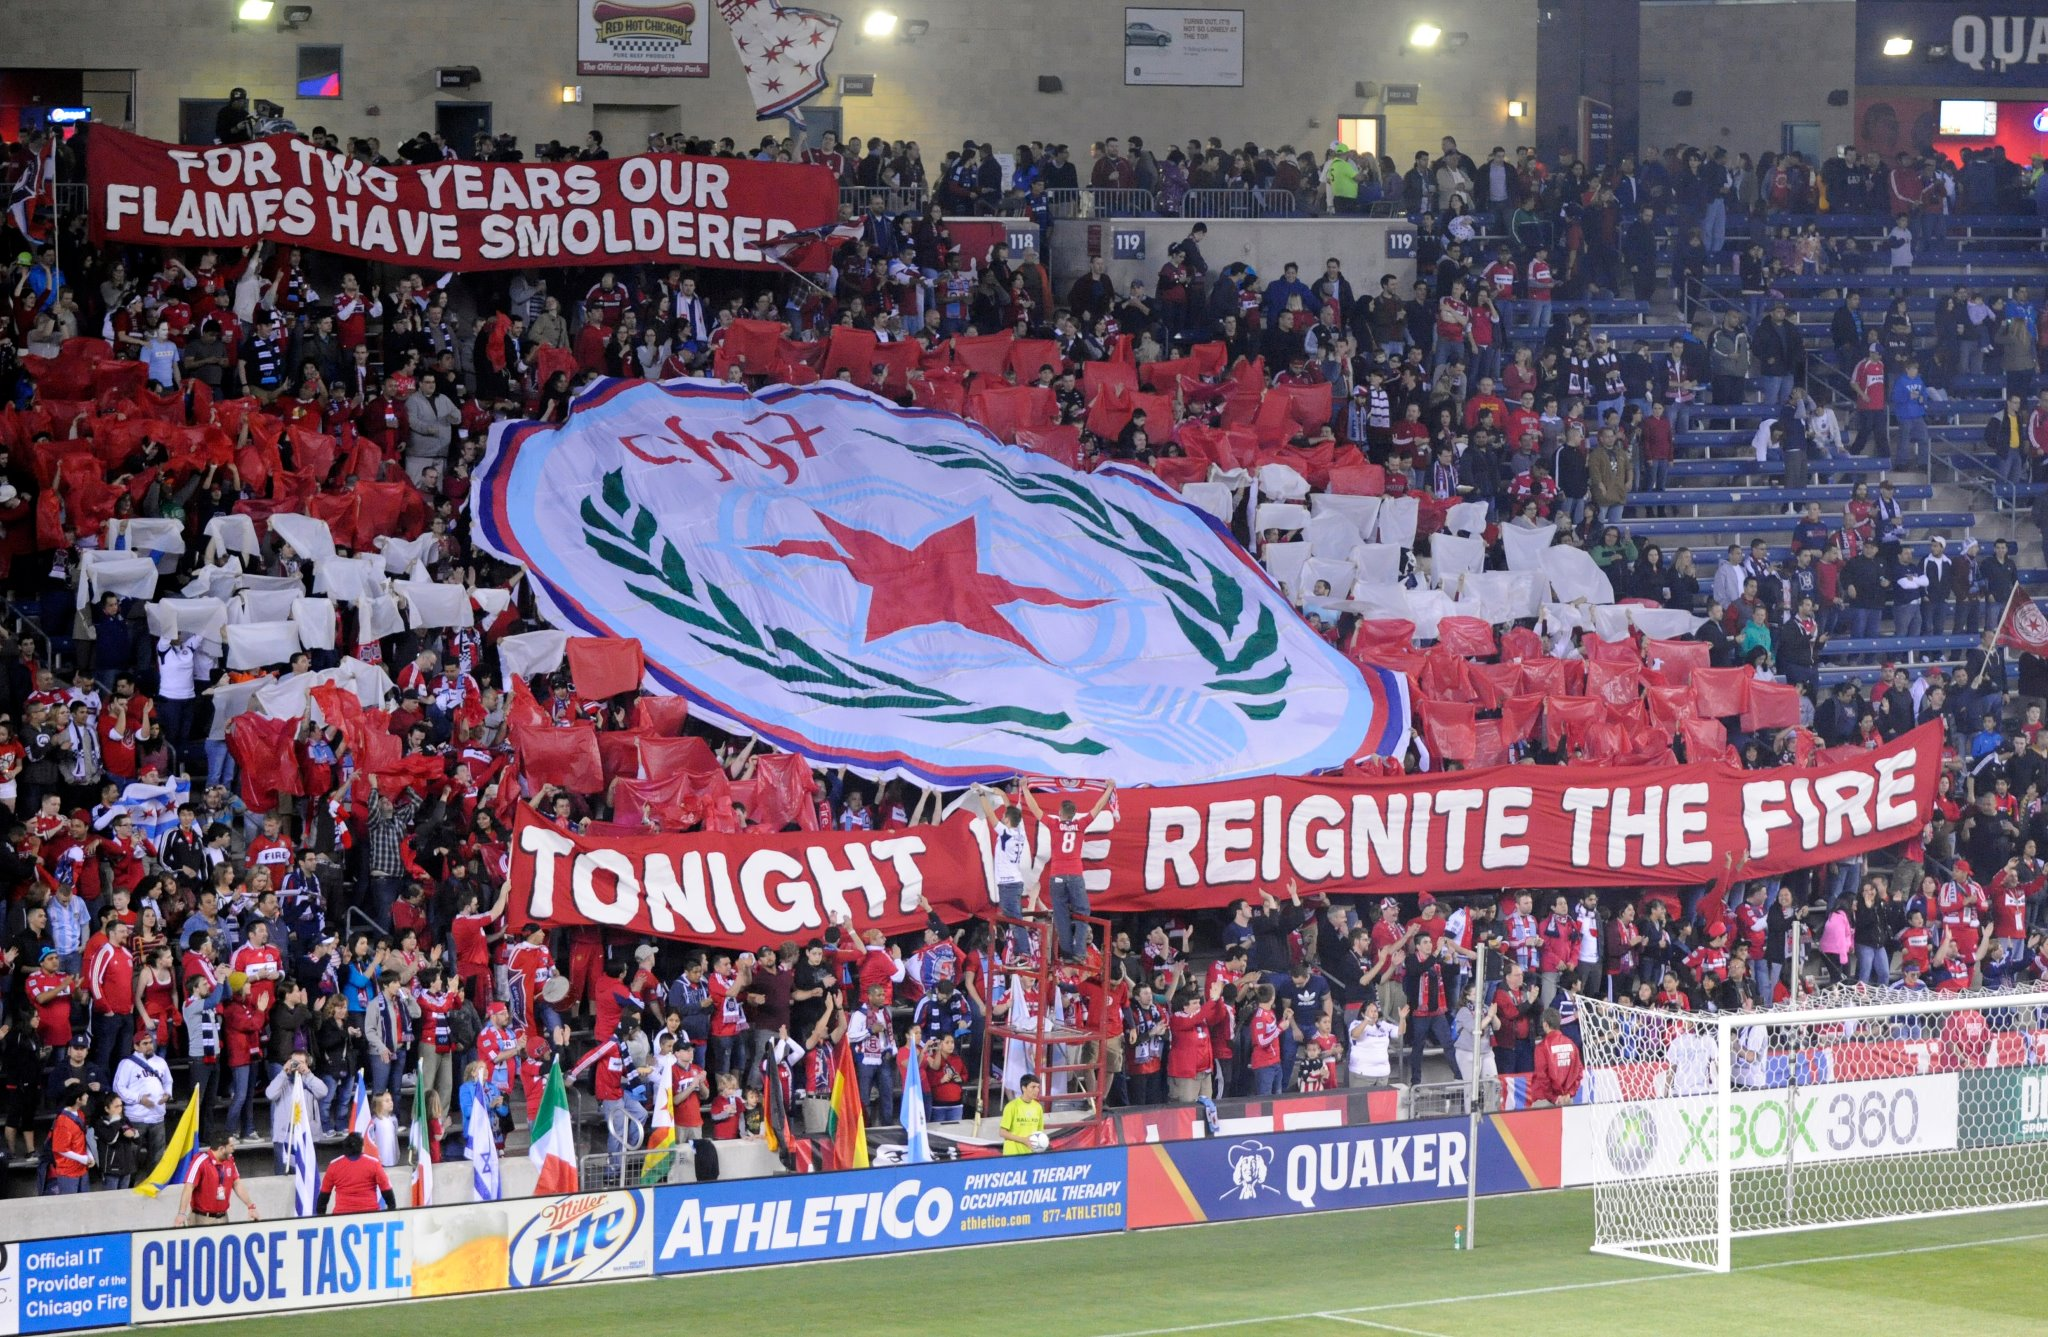 Section 8 Tifo (Photo via Chicago Fire Facebook page)